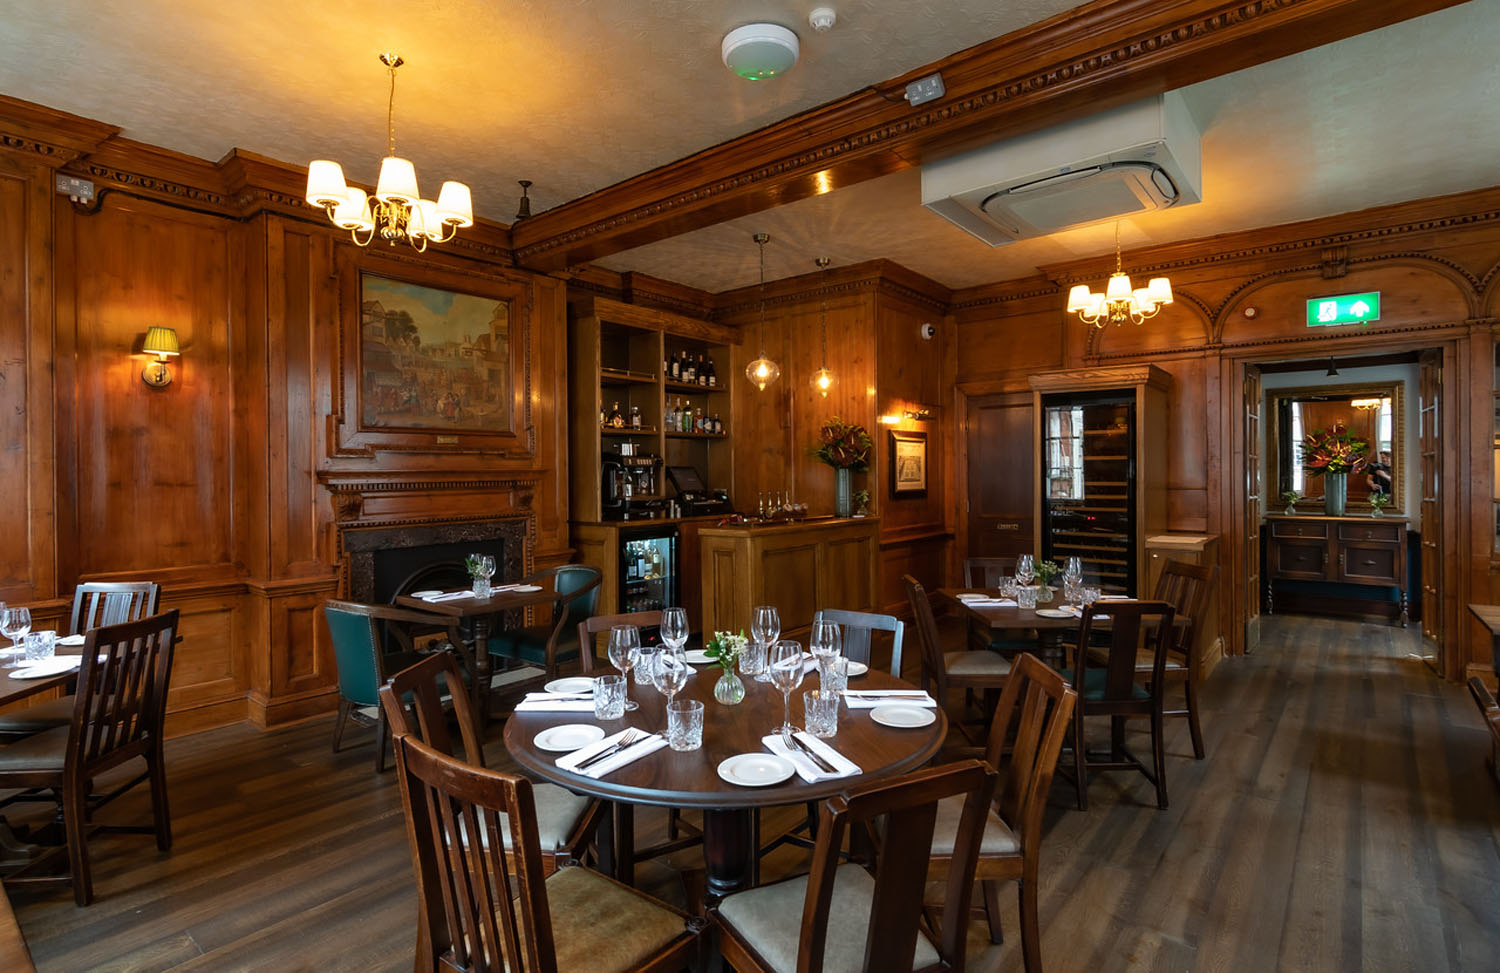 The Chesterfield Arms Dining Room